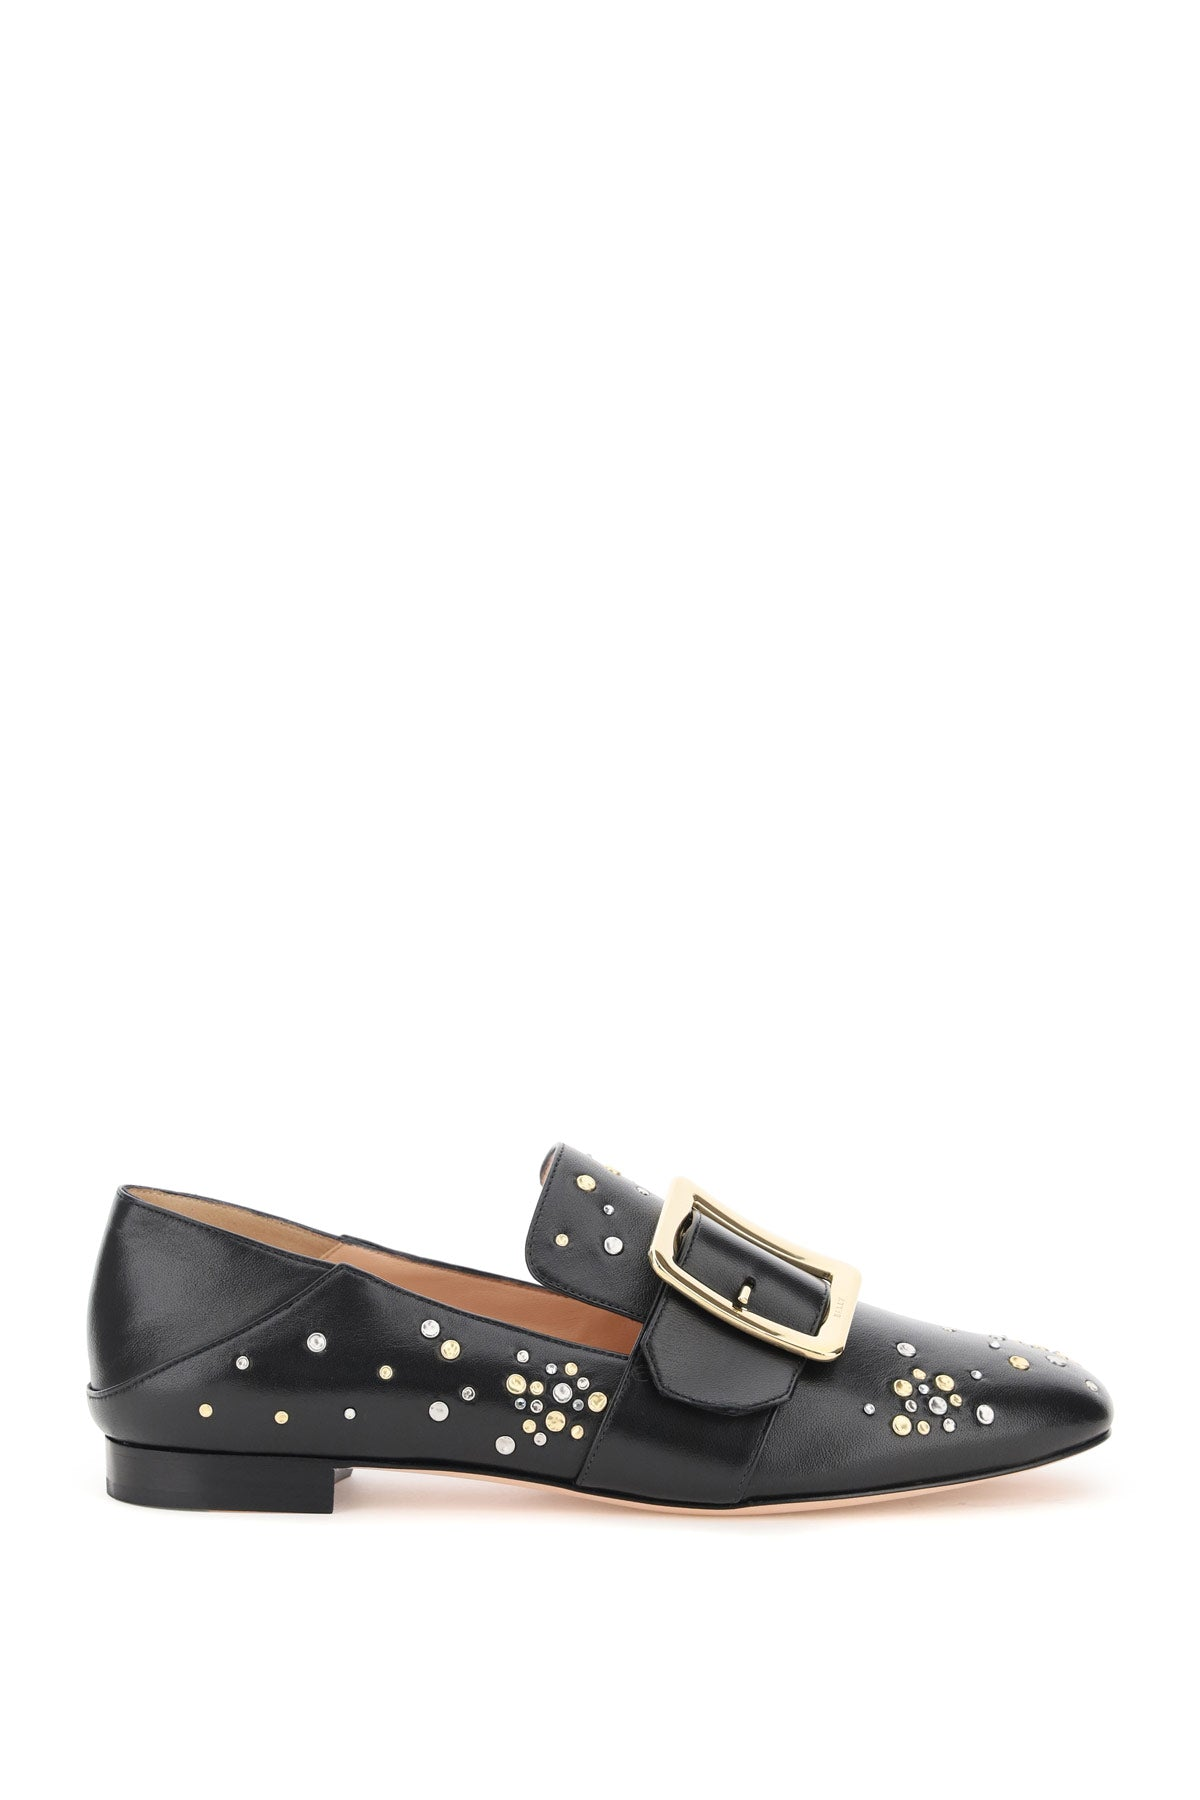 Bally BALLY JANELLE STUDDED LOAFERS